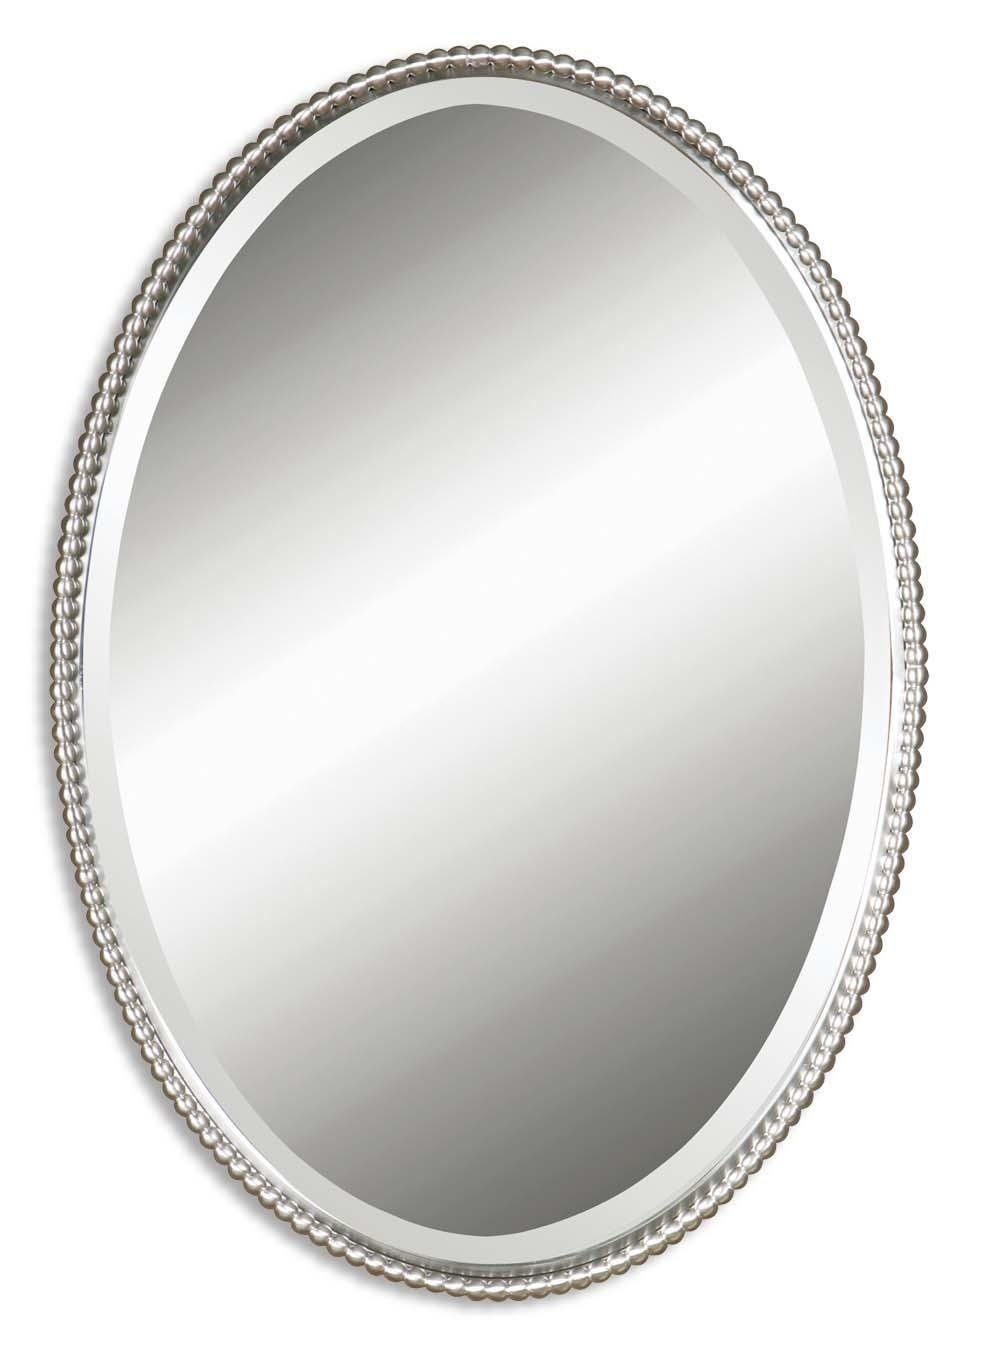 Uttermost Sherise Brushed Nickel Oval Mirror 01102 B Pertaining To Oval Silver Mirror (View 11 of 20)